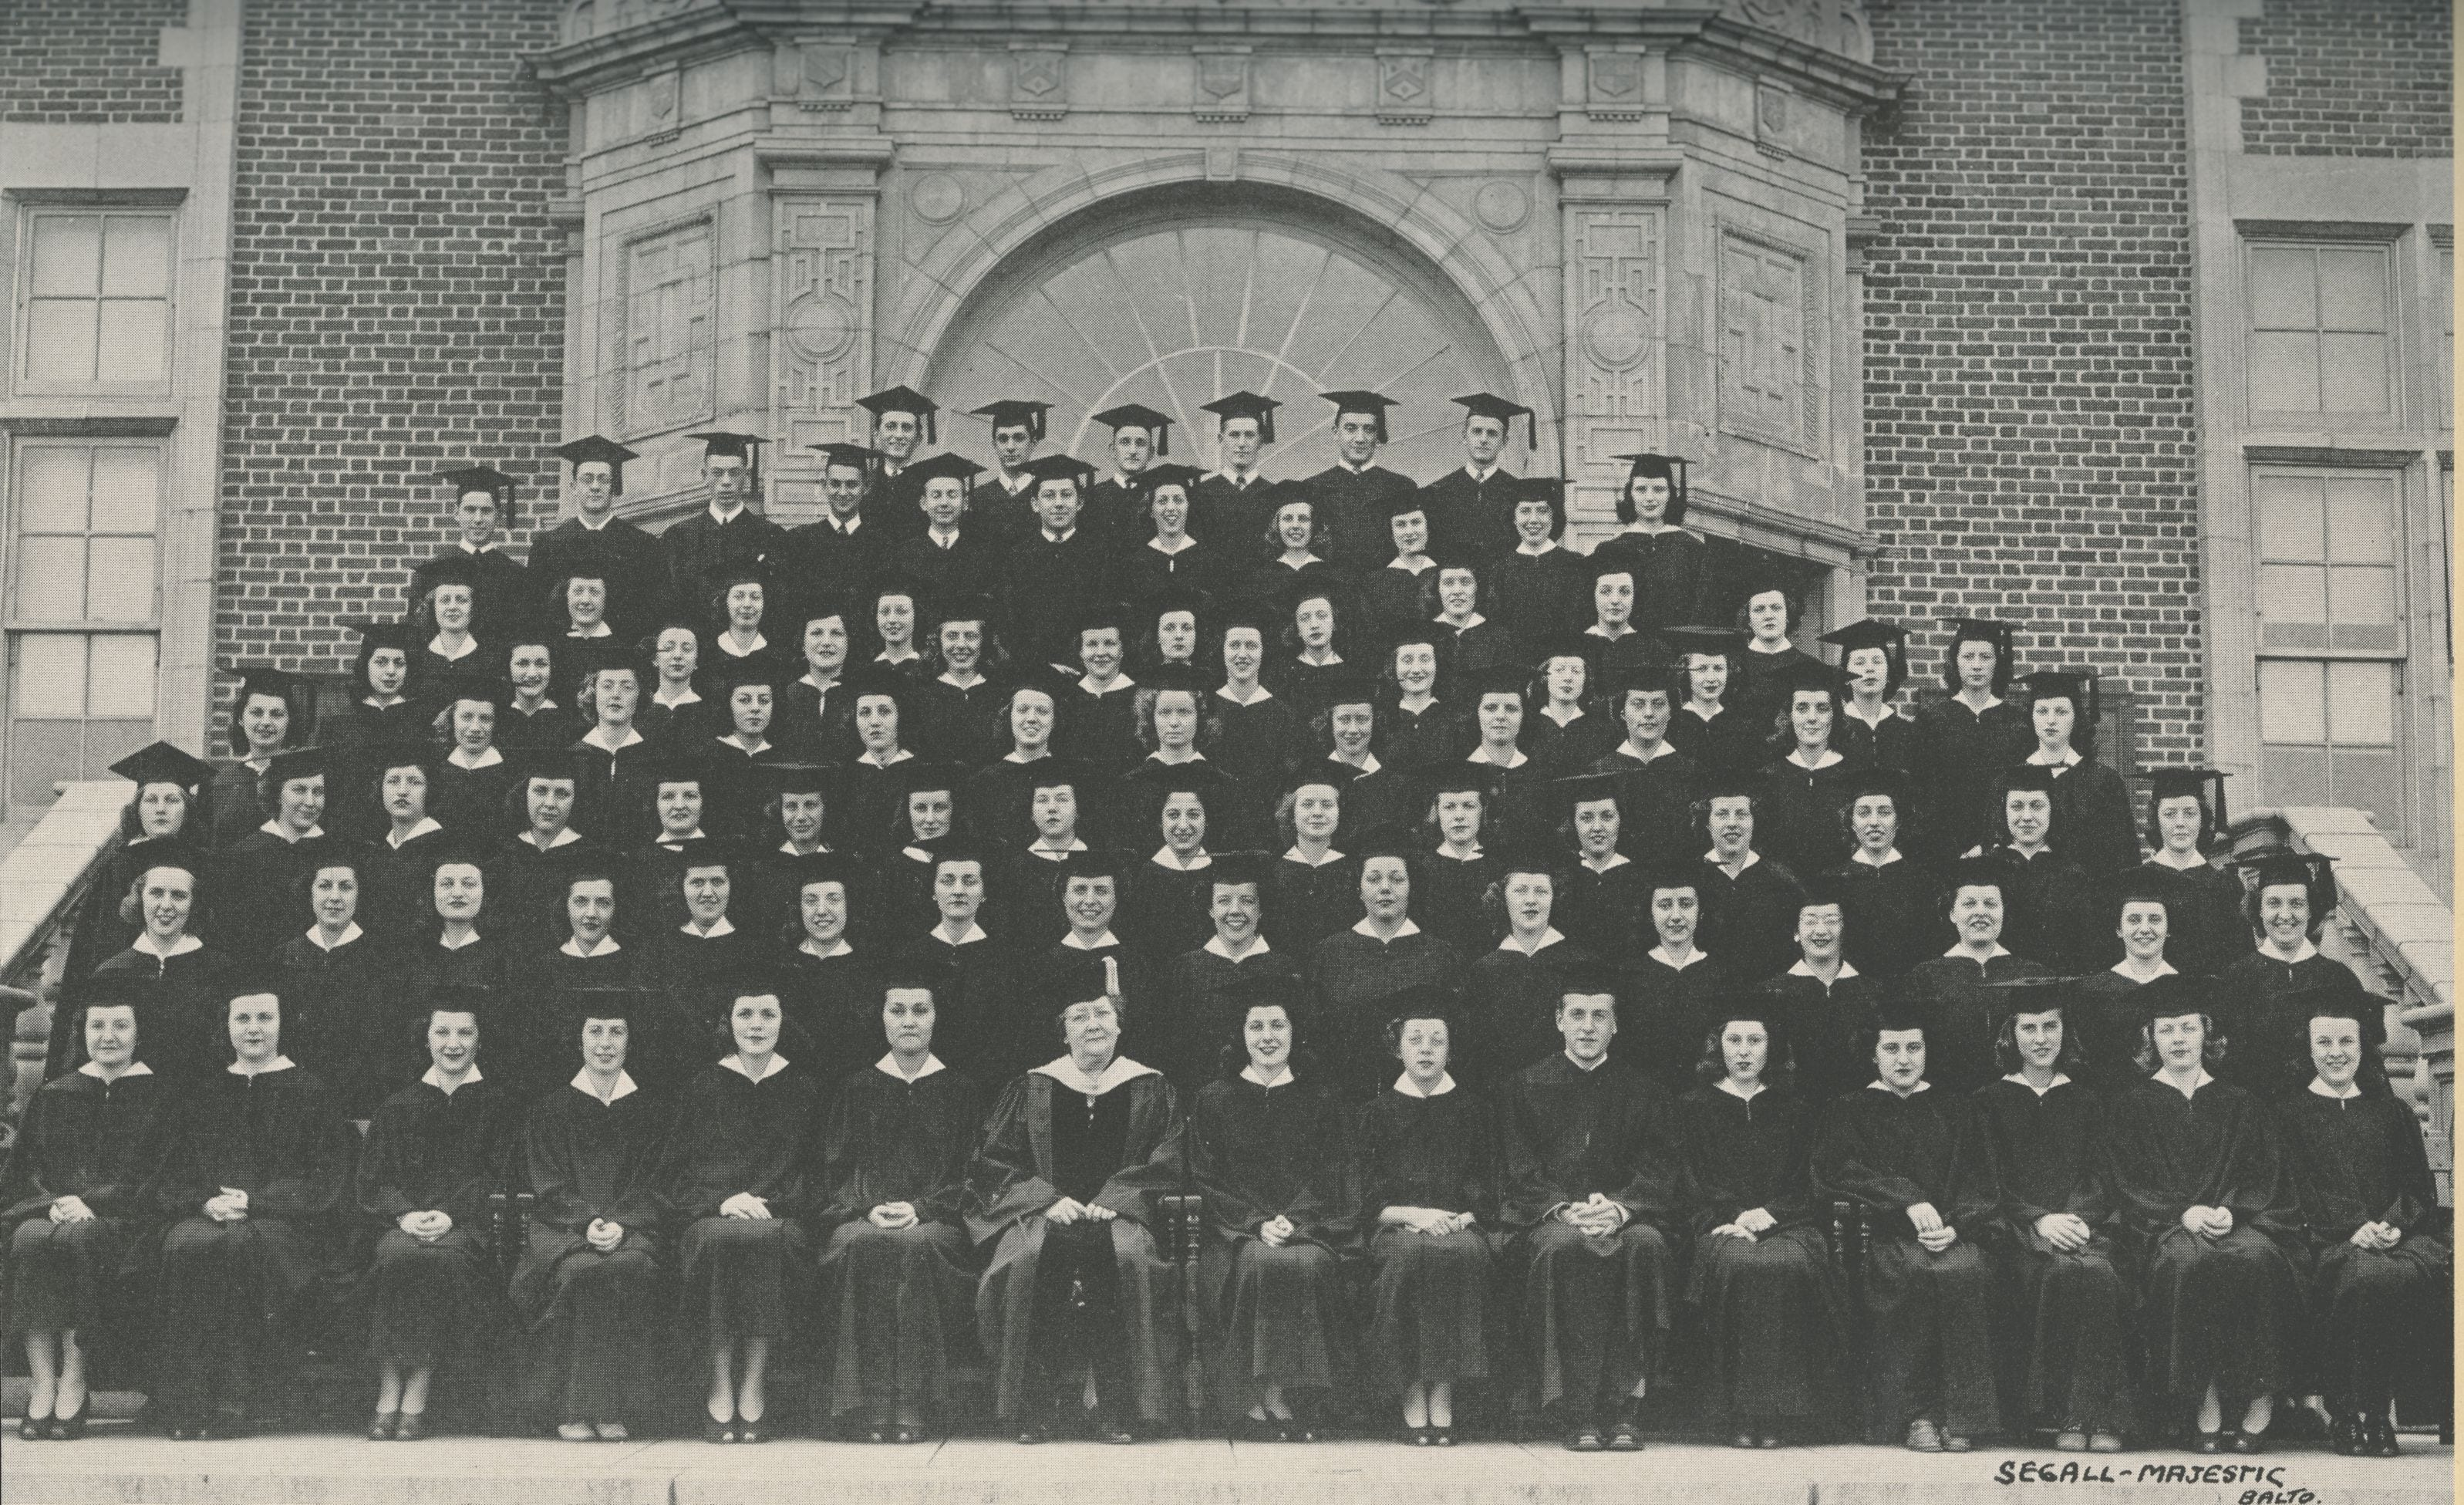 Photo of graduates in caps and gowns arranged on steps in front of Stephens Hall. Dr. Wiedefeld is seated in front and center of the photo dressed in academic regalia